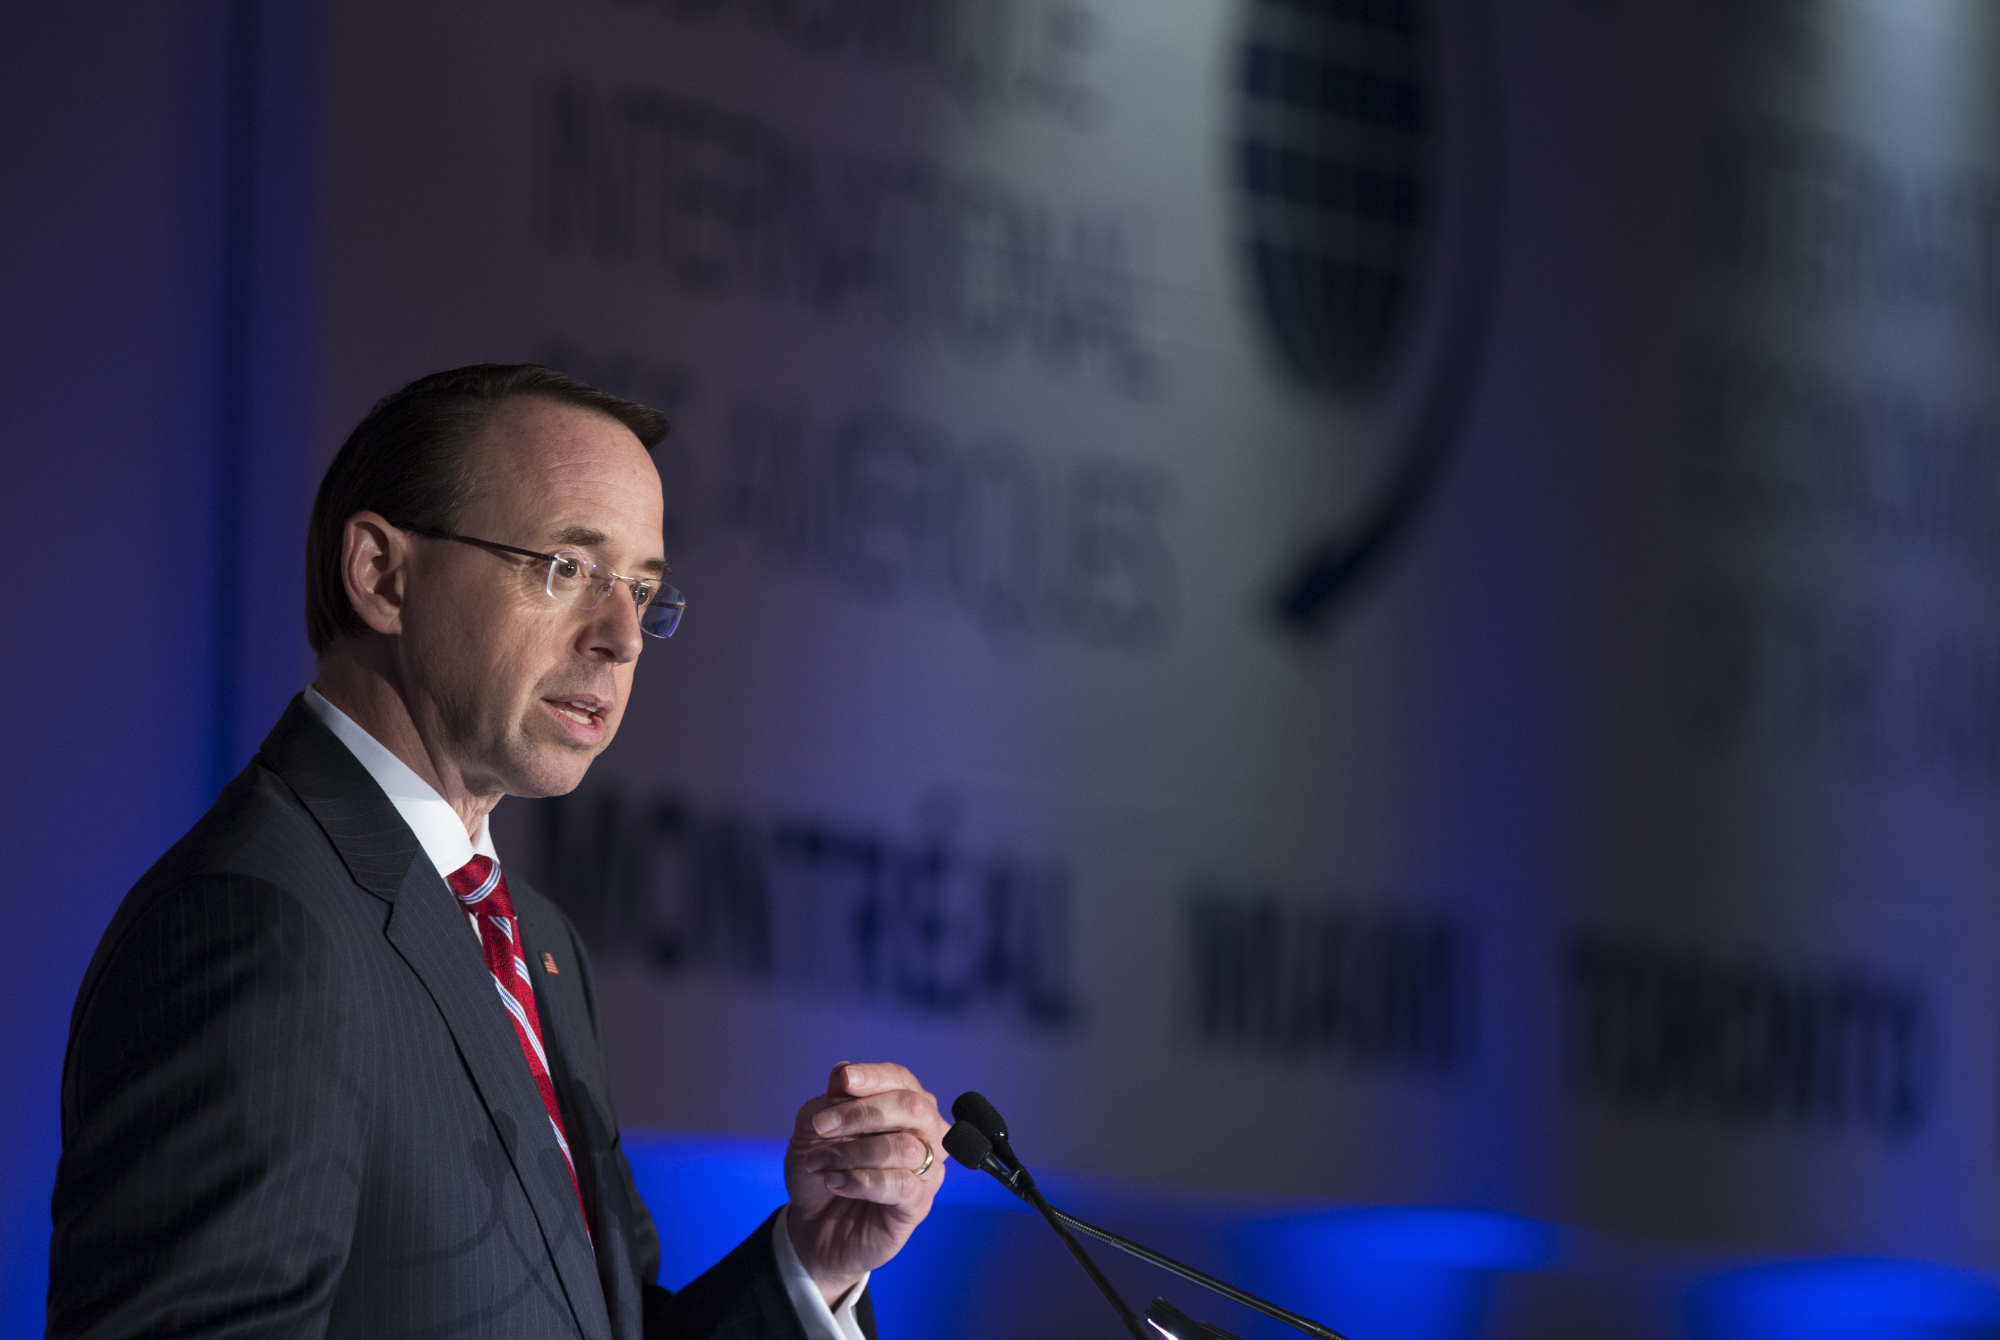 Rod Rosenstein, deputy attorney general, speaks during the International Economic Forum Of The Americas (IEFA) in Montreal, Quebec, Monday. | BLOOMBERG